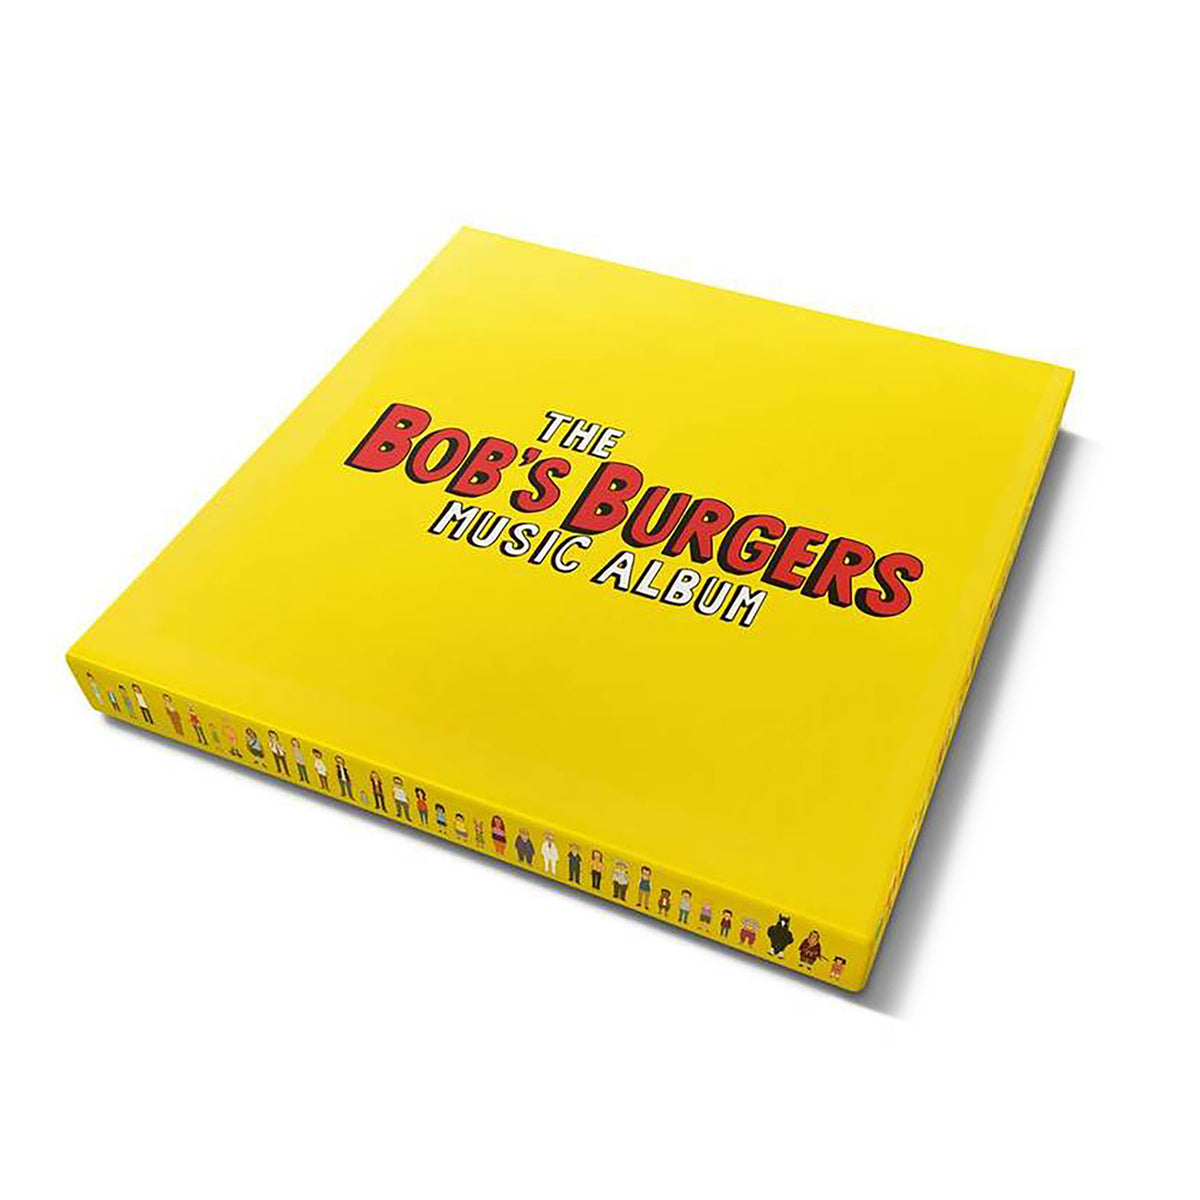 "Bob's Burgers: The Bob's Burgers Music Album (Colored Vinyl) Vinyl 3LP+7"" Boxset - PRE-ORDER"